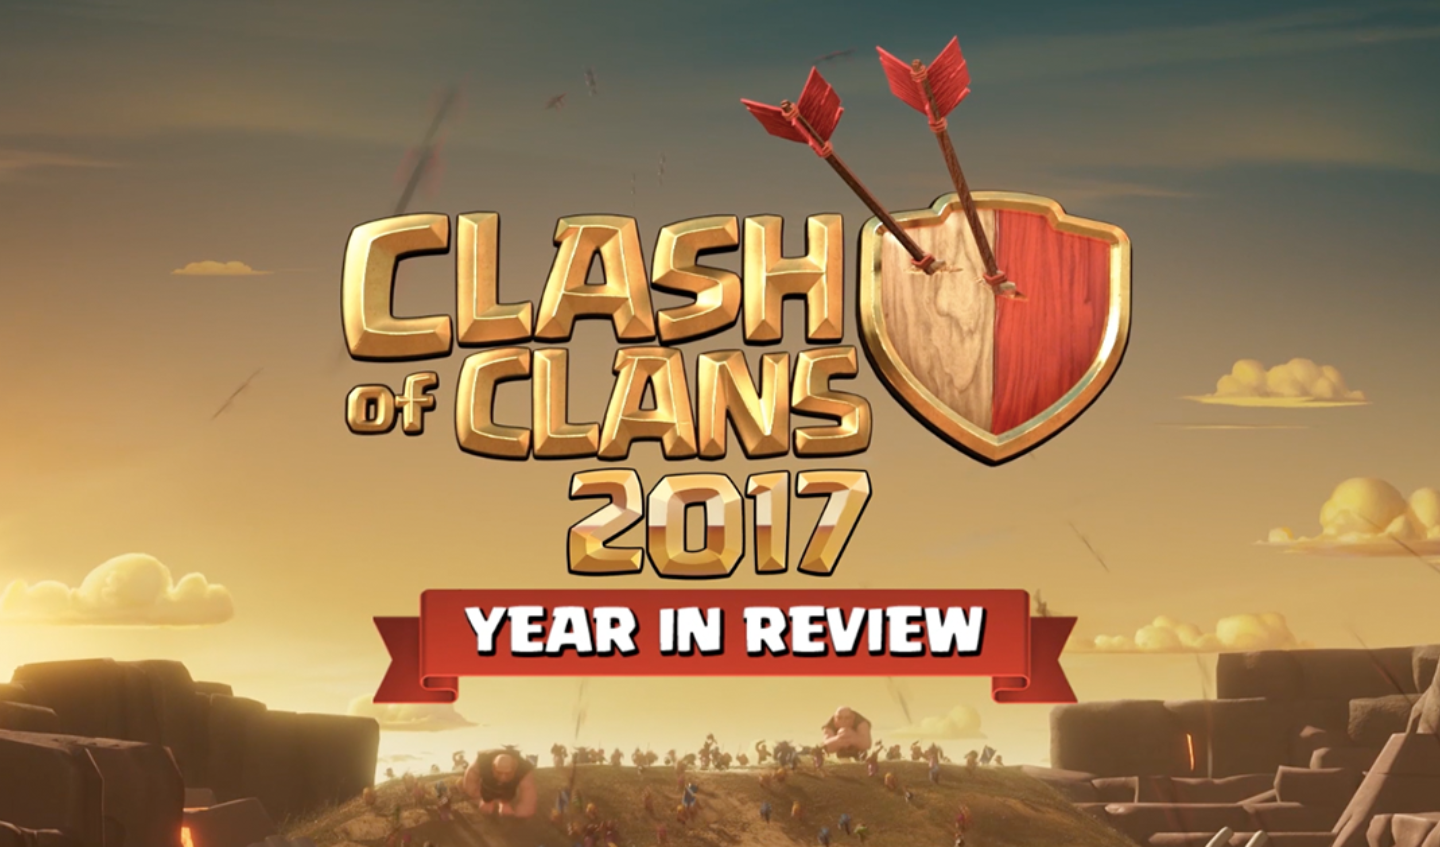 2017 year in review so far